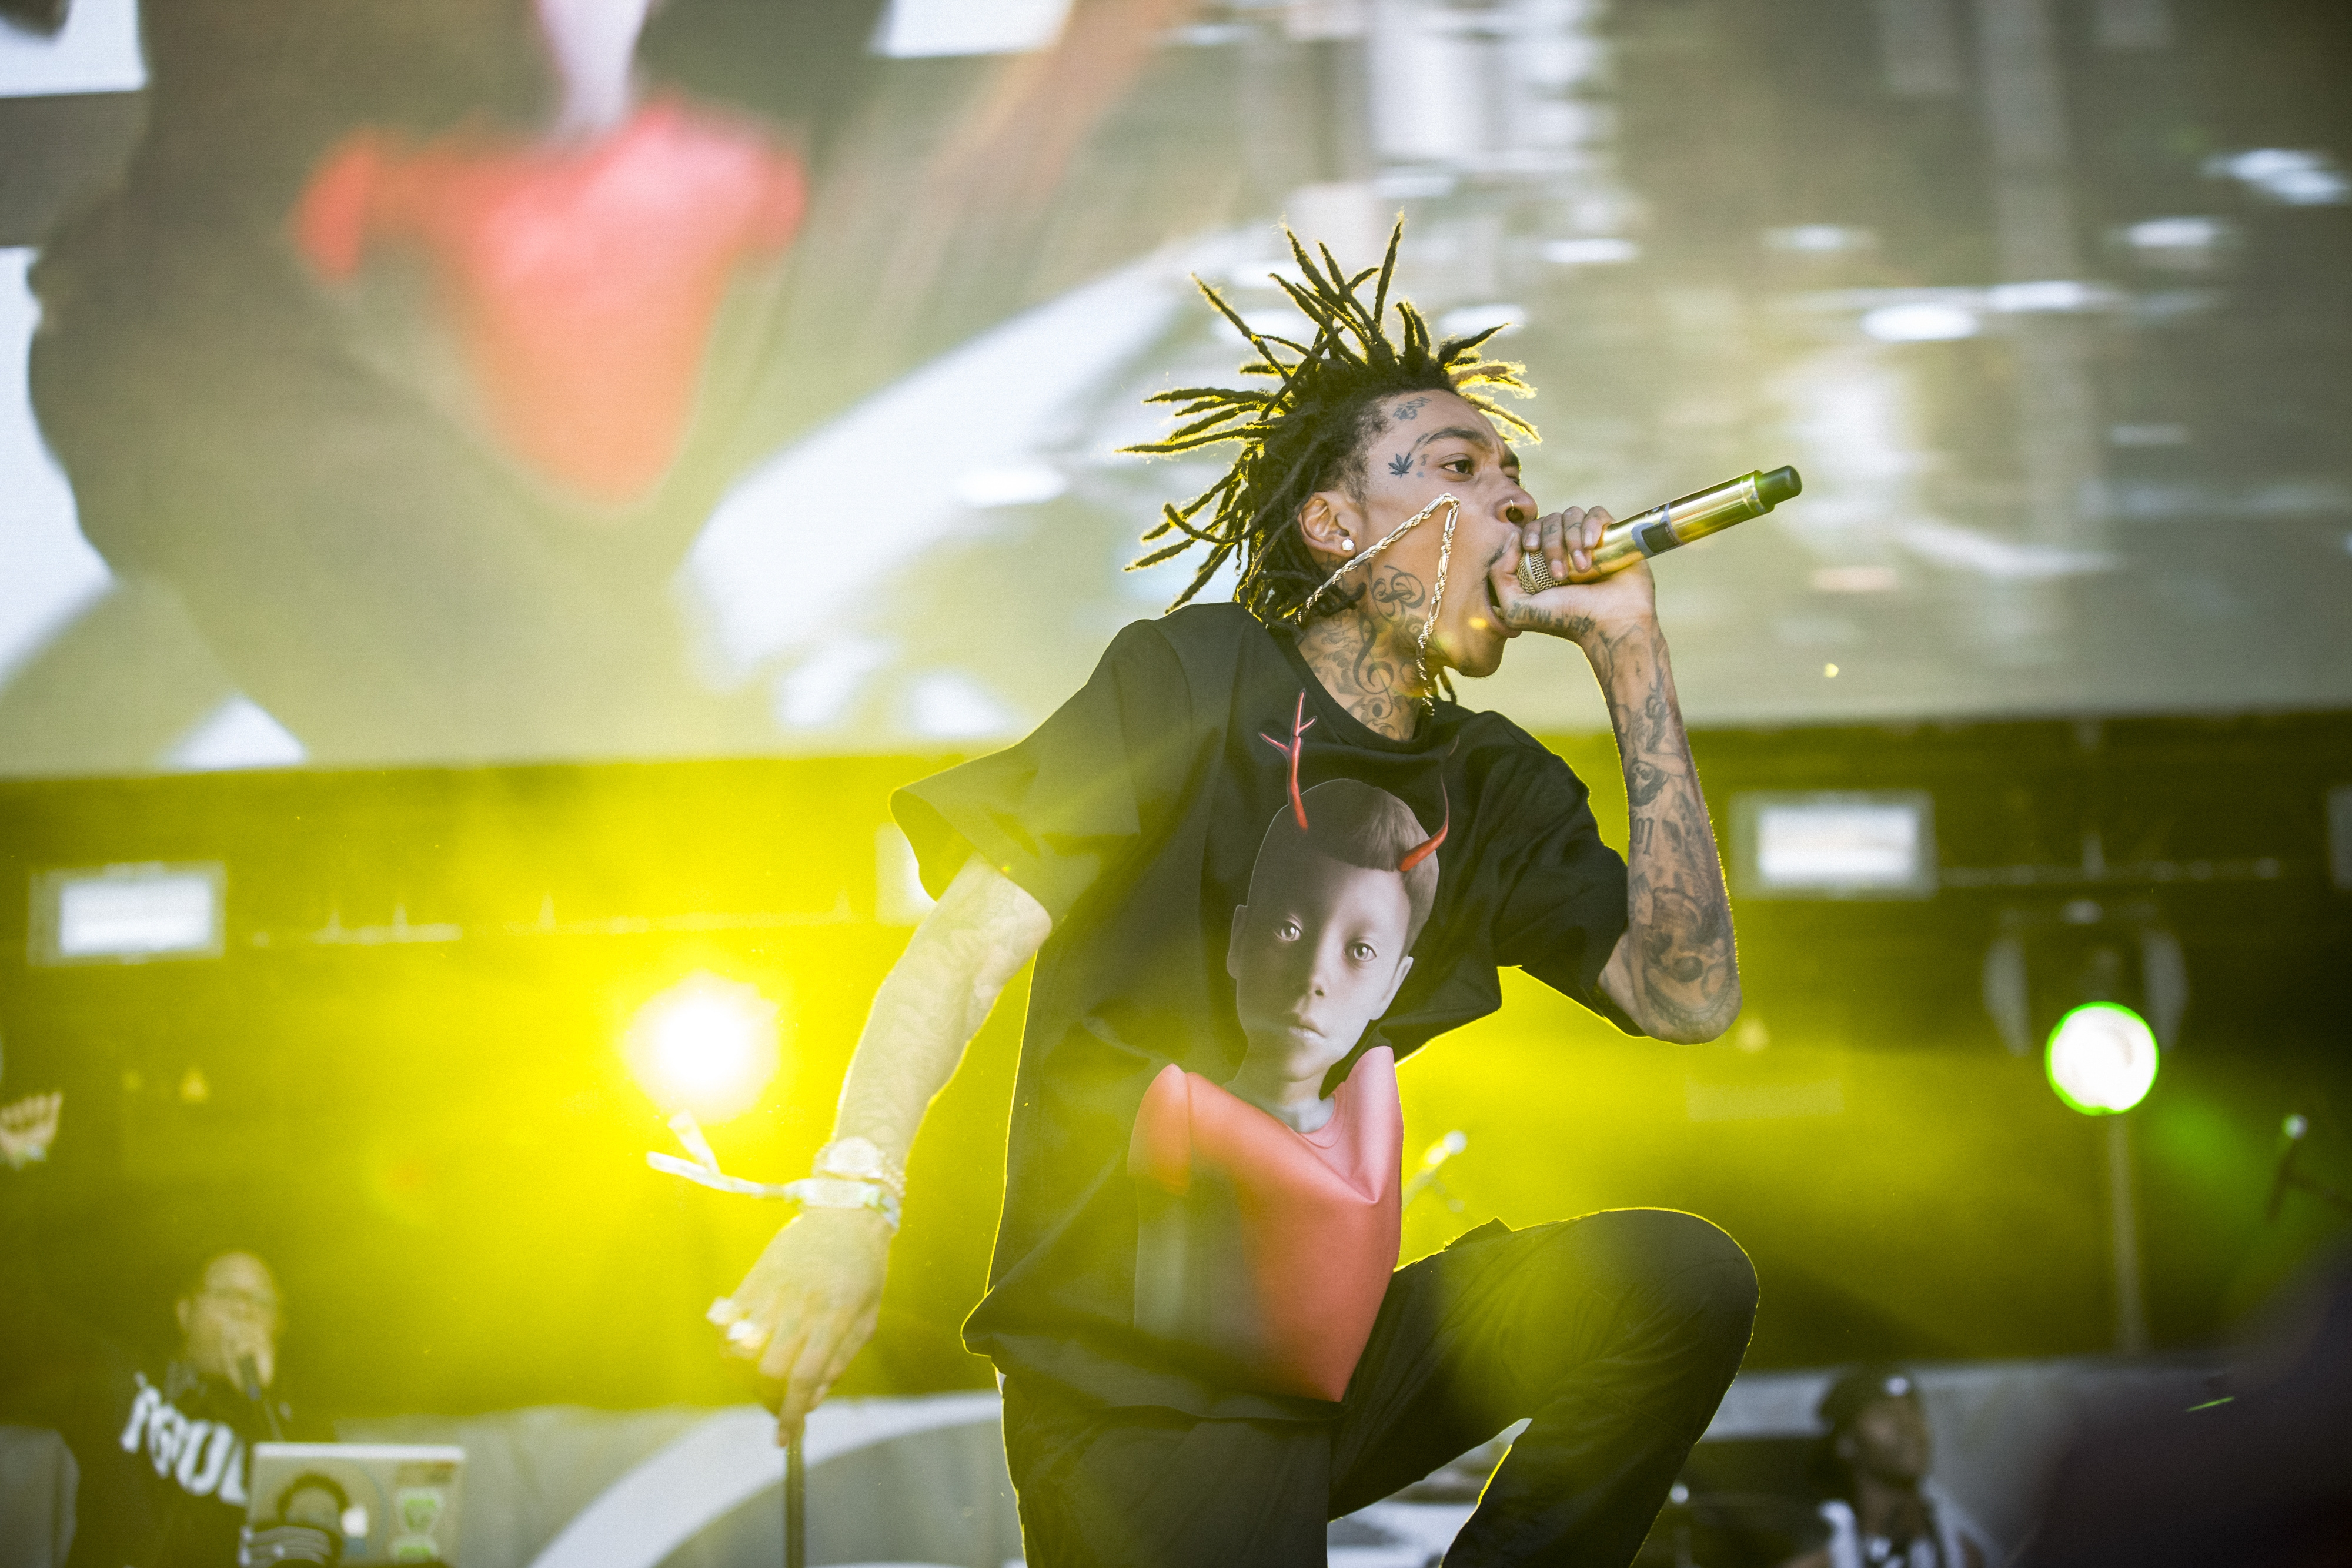 Wiz Khalifa performs during the Hot 97's Summer Jam at the MetLife Stadium in East Rutherford, N.J., June 1, 2014. As hip-hop has become less tense and less overtly confrontational, the Summer Jam has had to find new traditions, new believers in the old ones, or accept that the Jam can't be what it once was. (Chad Batka/The New York Times)